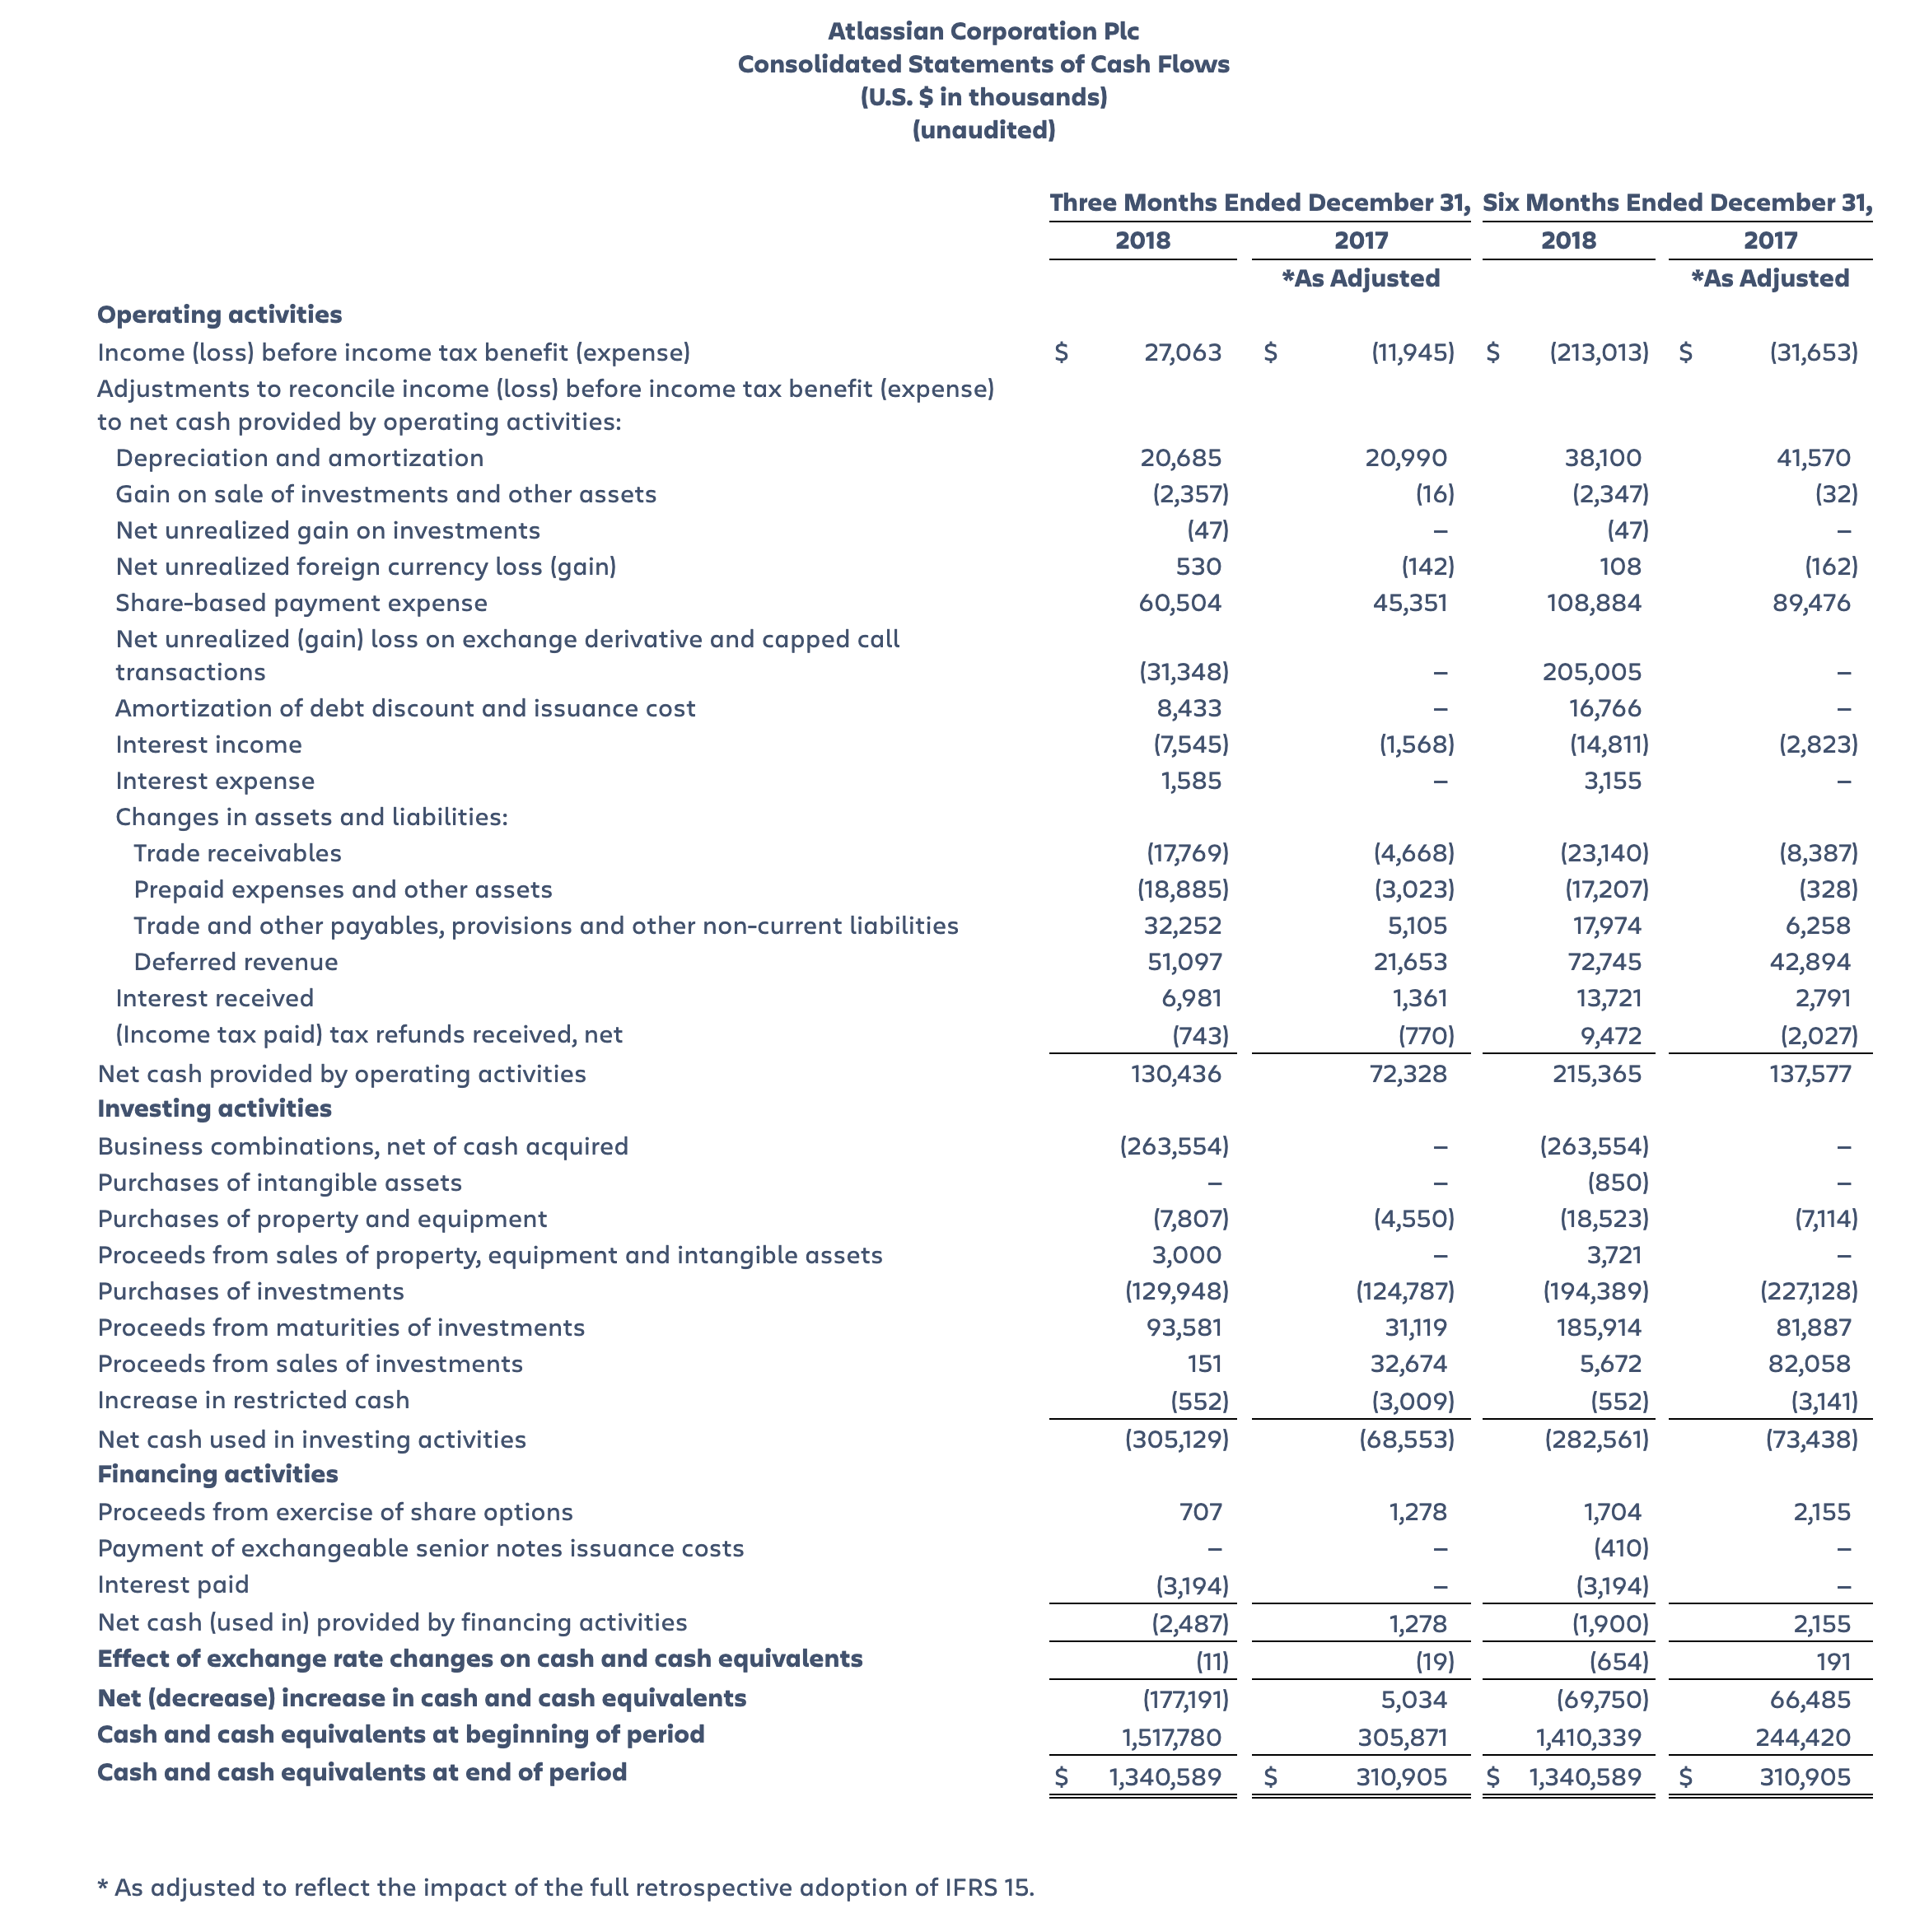 Atlassian Consolidated Statements of Cash Flow, Second Quarter Fiscal Year 2019